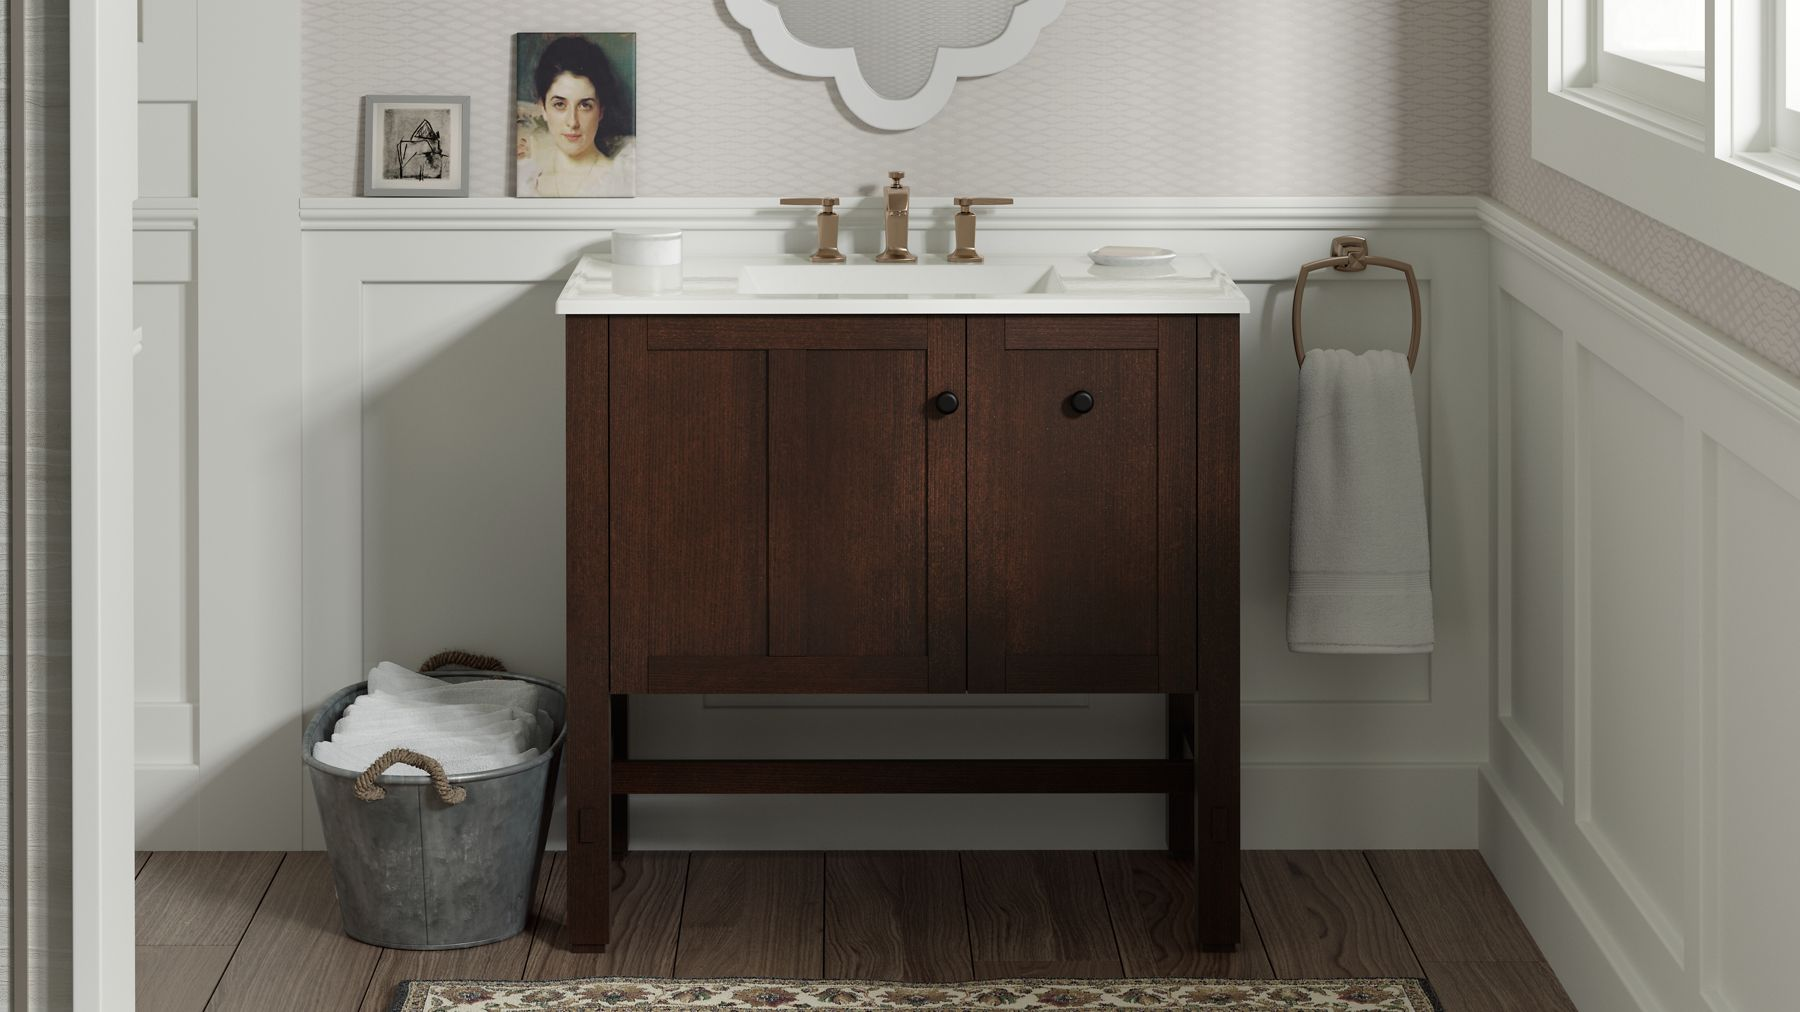 Discover your style: Explore 6 designer bathrooms | KOHLER on bathroom design with storage, brushed gold bath fixtures, bathroom faucet, bathroom granite countertop colors, bathroom suite layout, bathroom design with granite, bronze bath fixtures, bronze shower fixtures, rubbed bronze bathroom fixtures, bathroom towel and toilet paper holders, dark bronze bathroom fixtures, bathroom design ideas, bathroom paint color ideas,